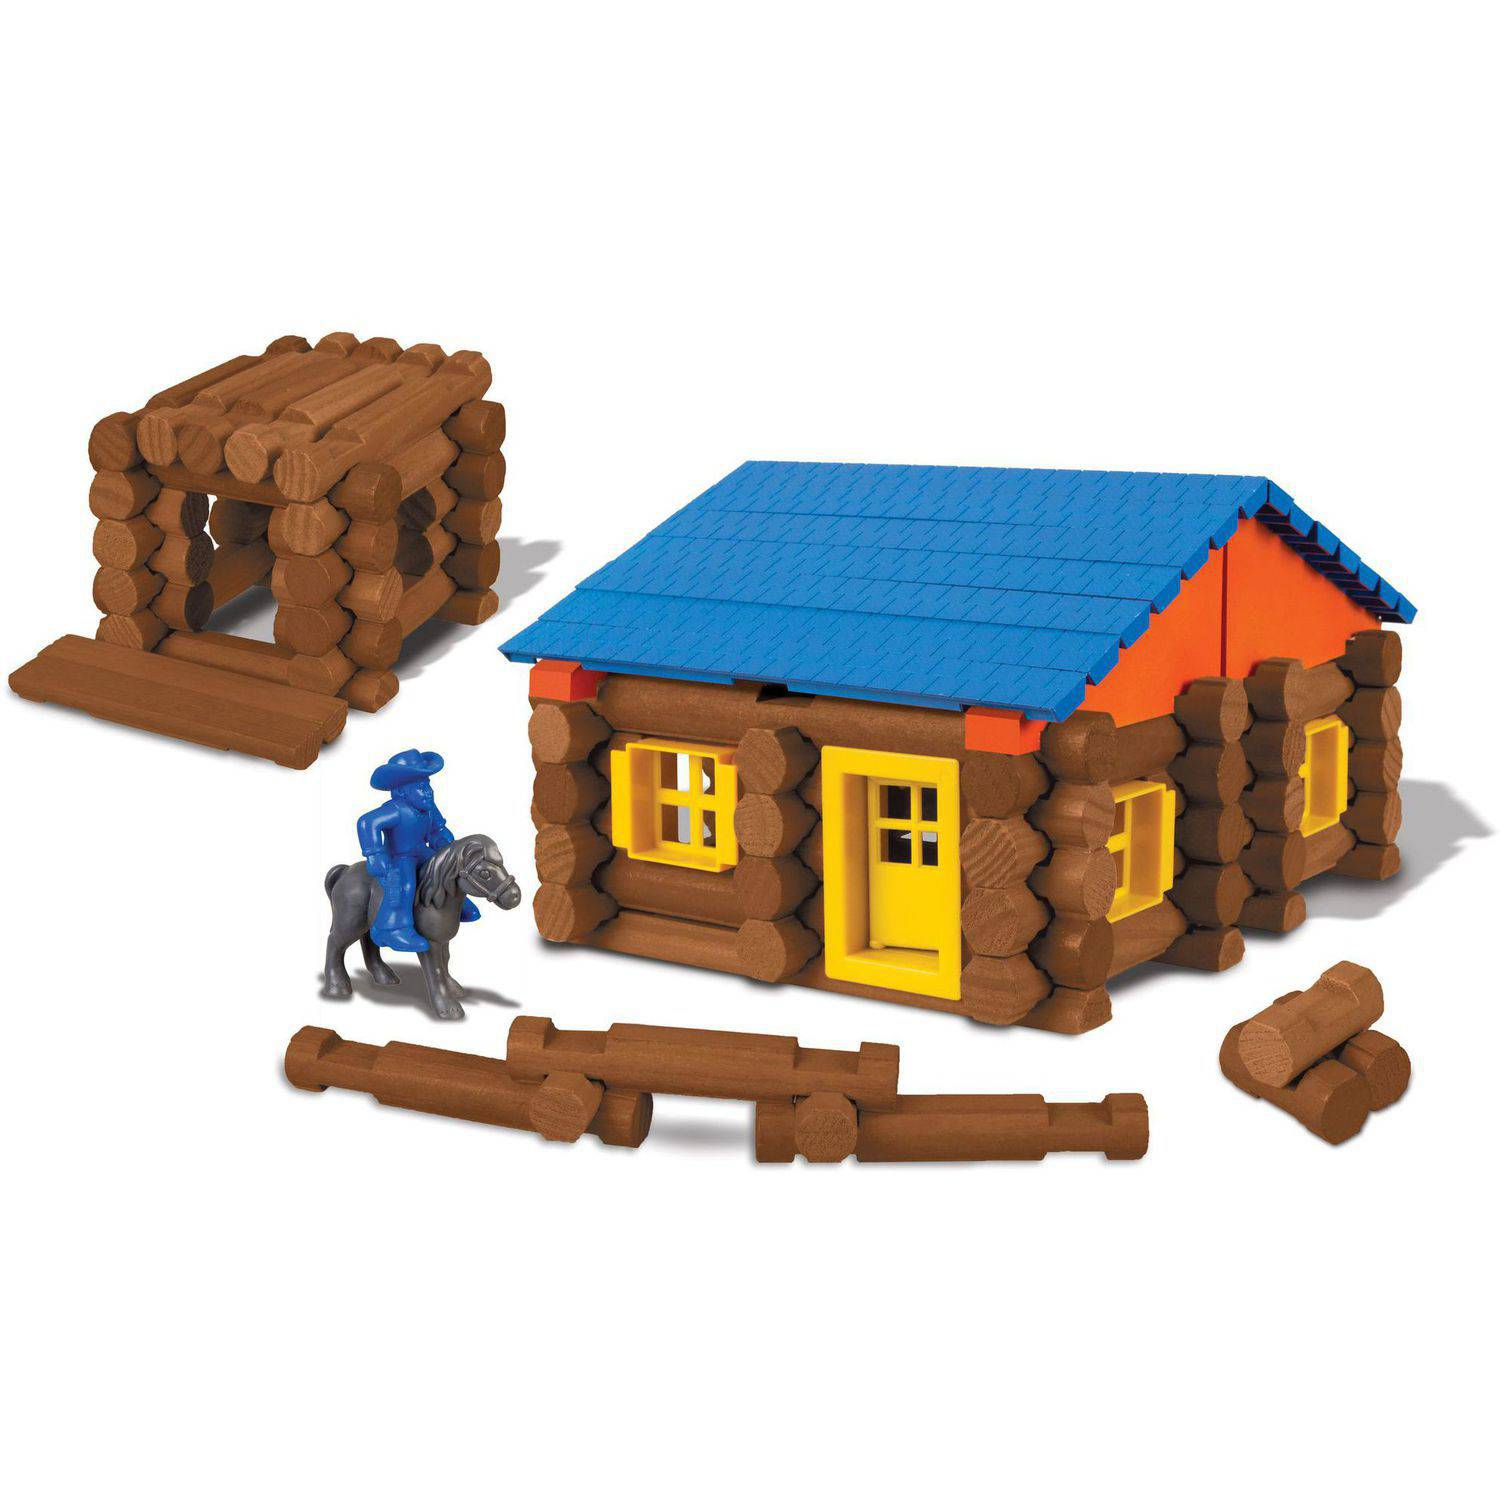 LINCOLN LOGS ? Oak Creek Lodge ? 137 Pieces ? Ages 3+ Preschool Education Toy by LINCOLN LOGS